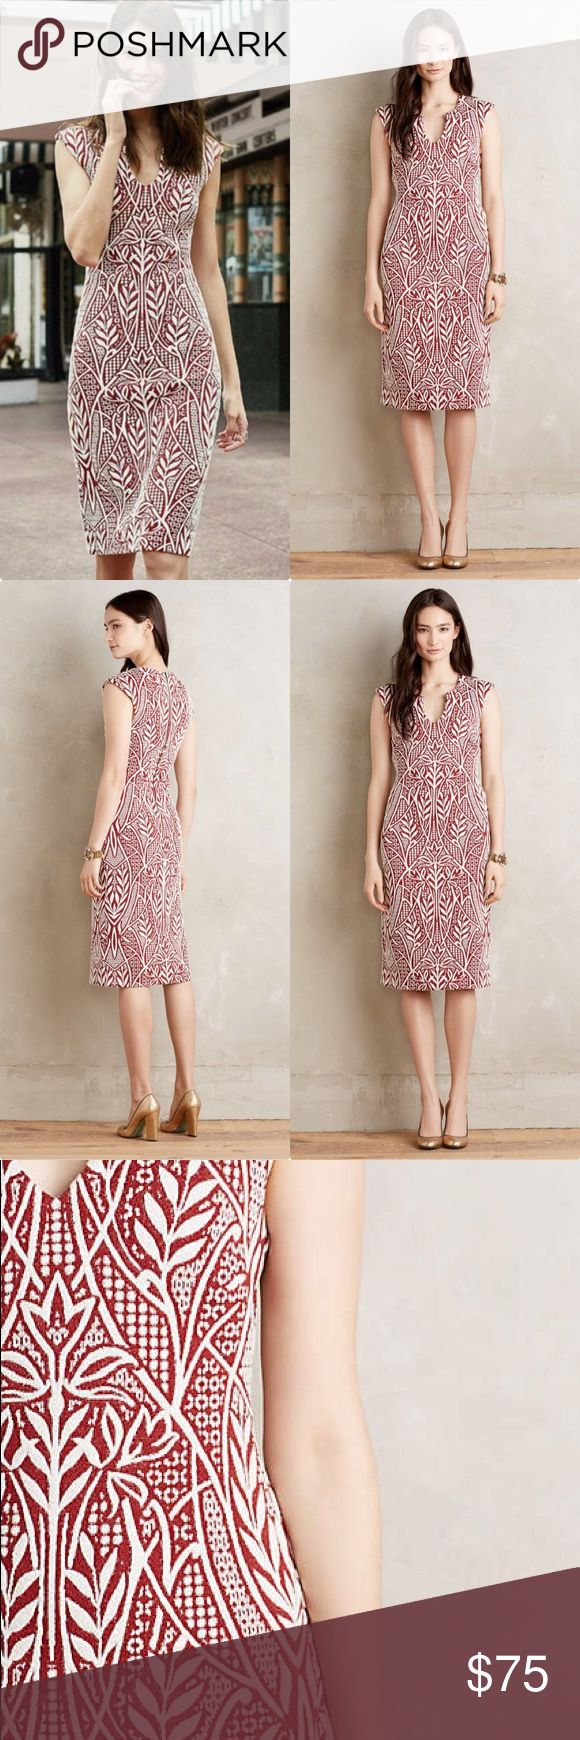 """Anthropologie Picotage Sheath HD in Paris Picotage Sheath by HD in Paris Anthropologie ❤️ Polyester, cotton, spandex jacquard Slim silhouette Back zip Machine wash Imported Dimensions Bust 17"""" waist 16"""" approx hip 21.5"""" approx  Regular falls 43"""" from shoulder EUC Worn once Anthropologie Dresses"""